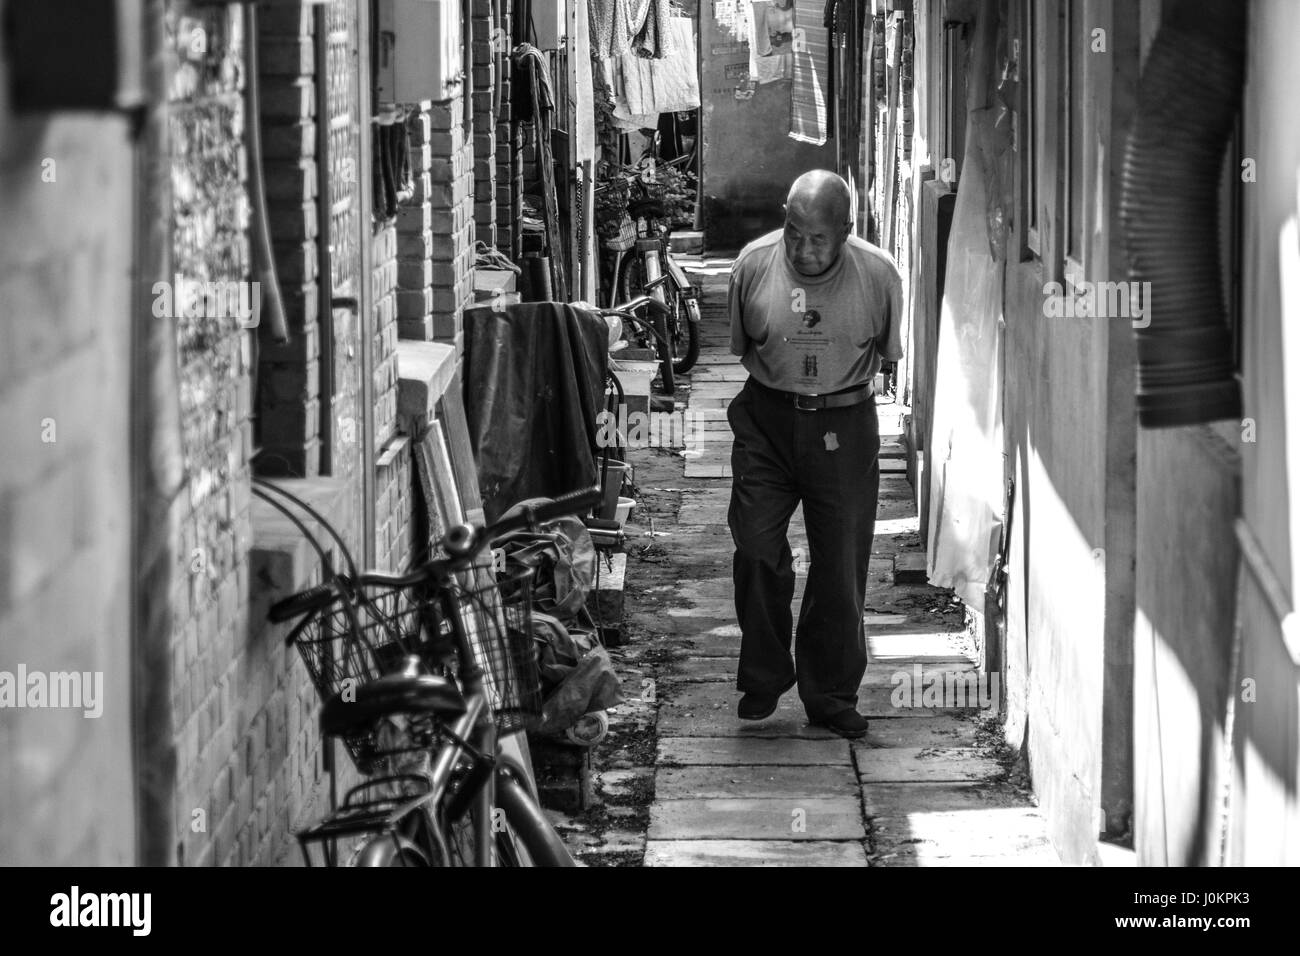 An elderly gentleman taking his morning stroll through the streets of Beijing - Stock Image